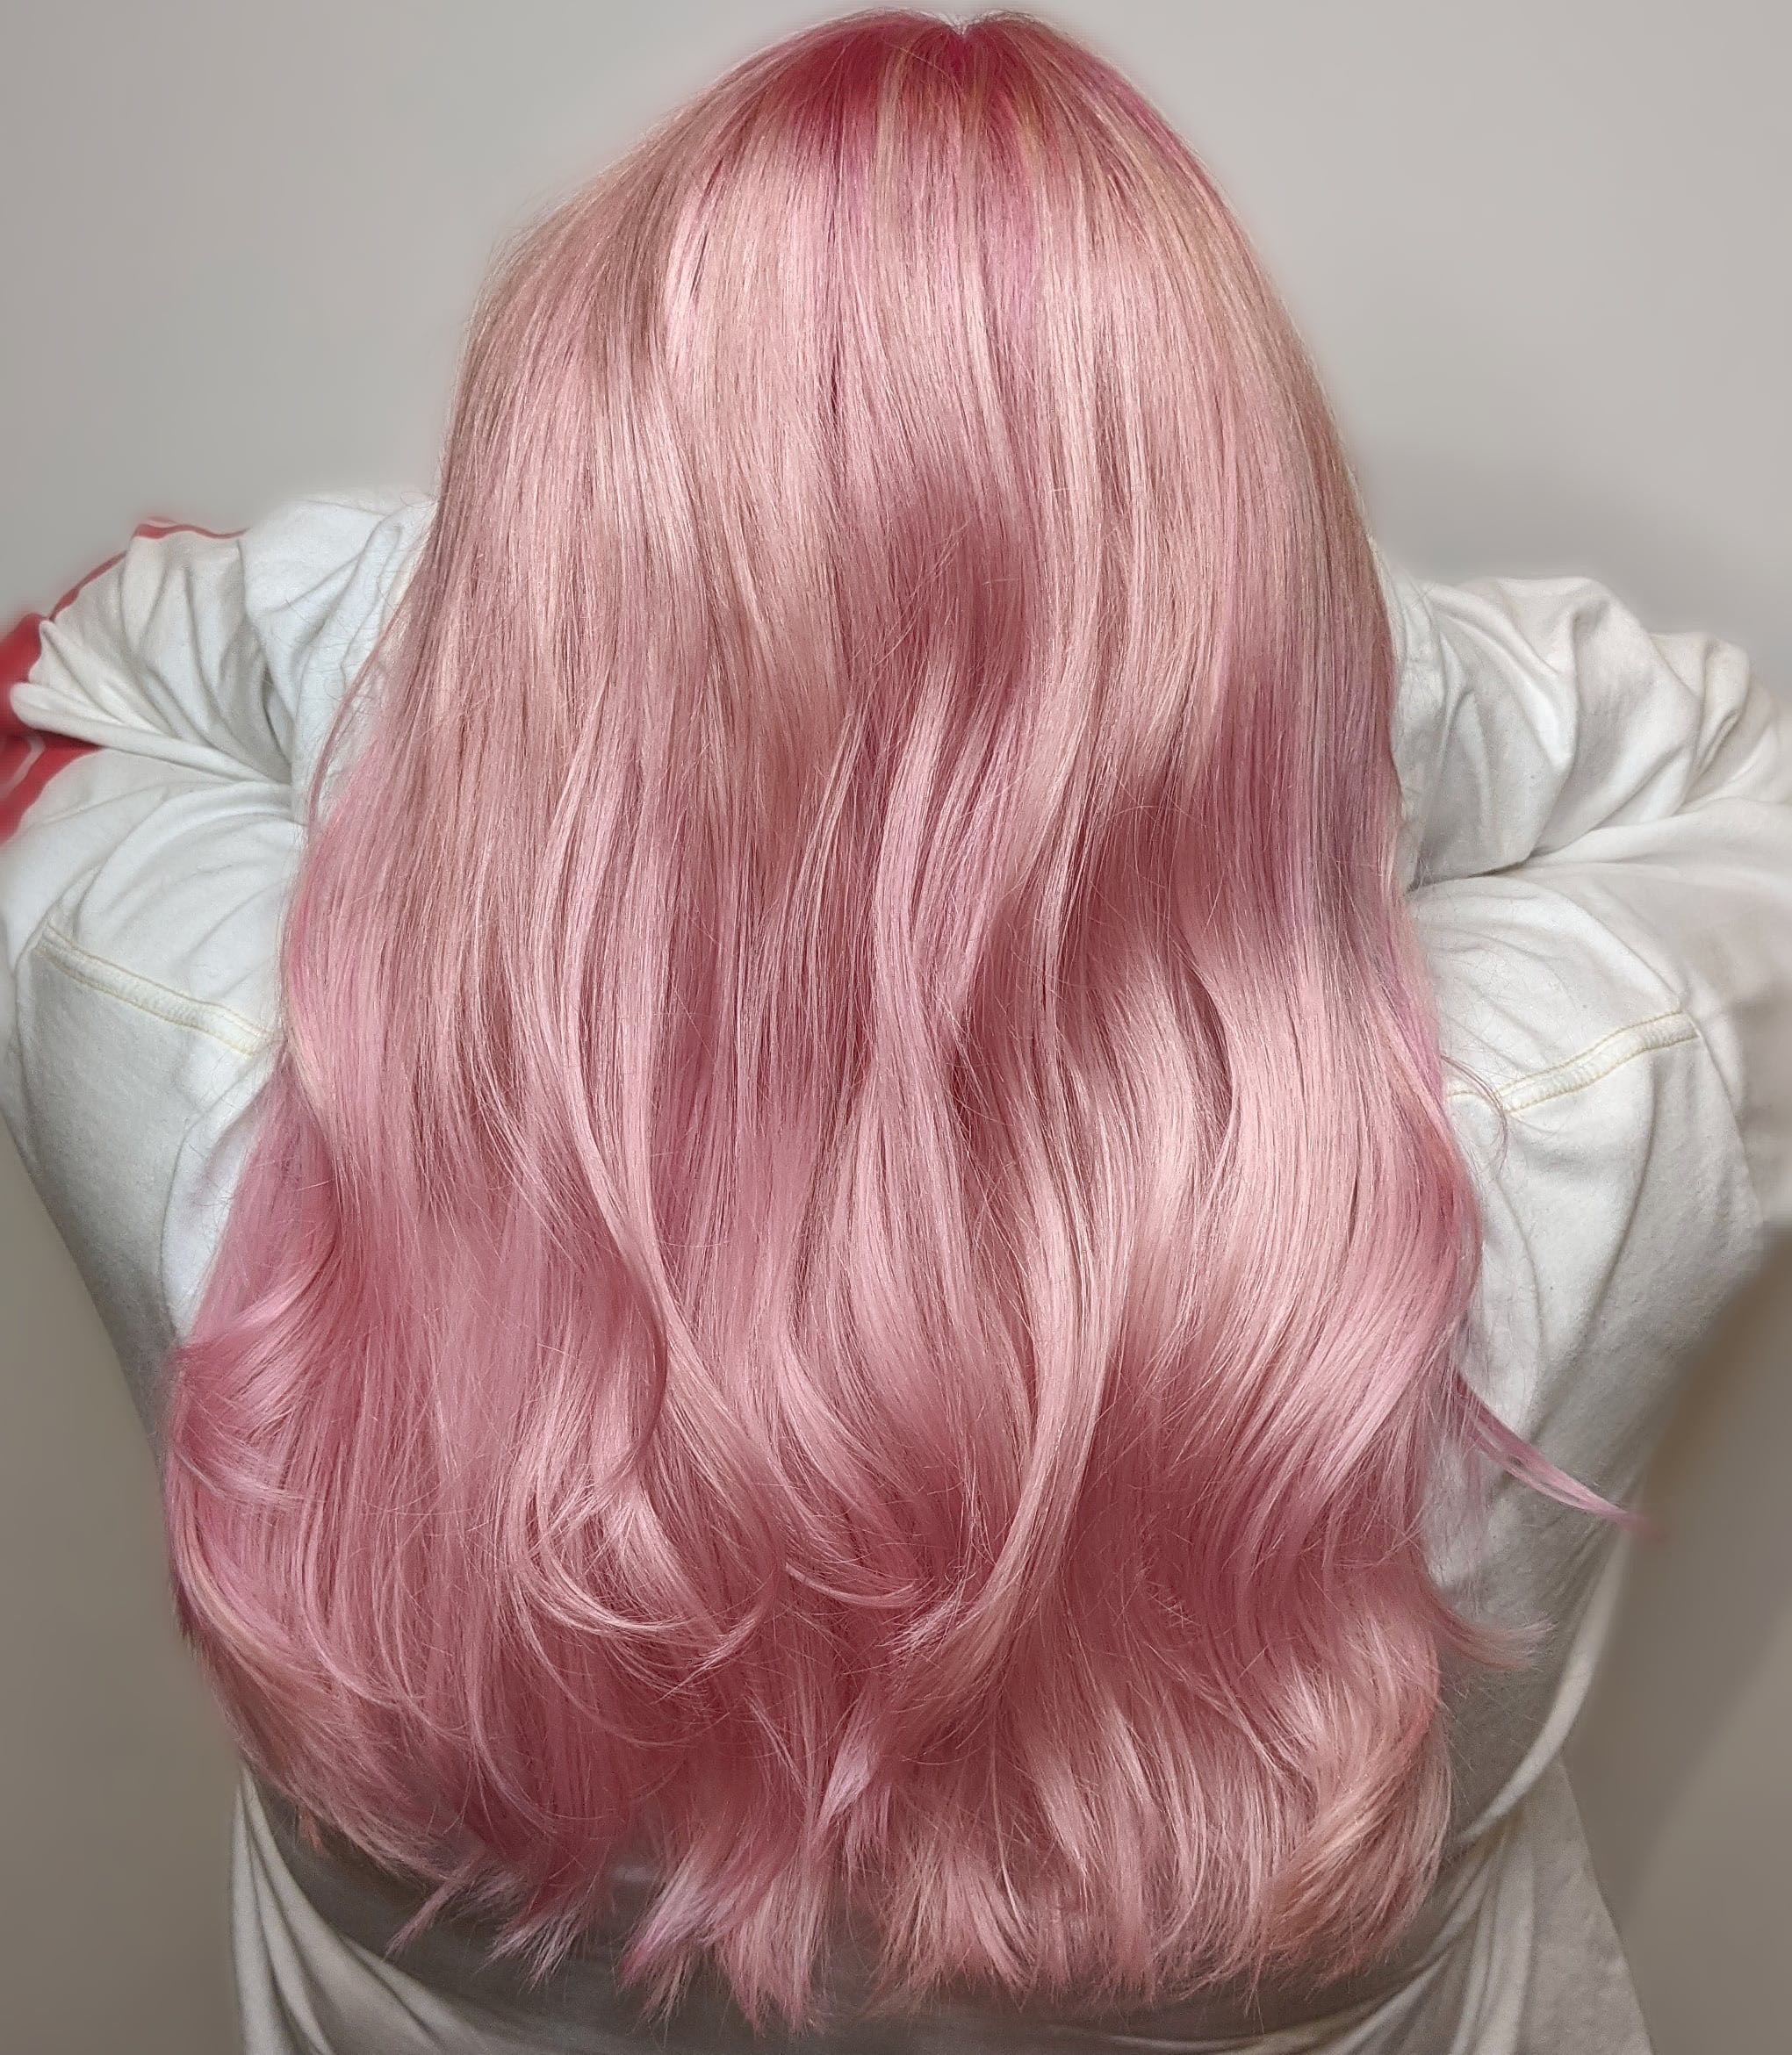 cotton-candy-pink-highlights-chicago